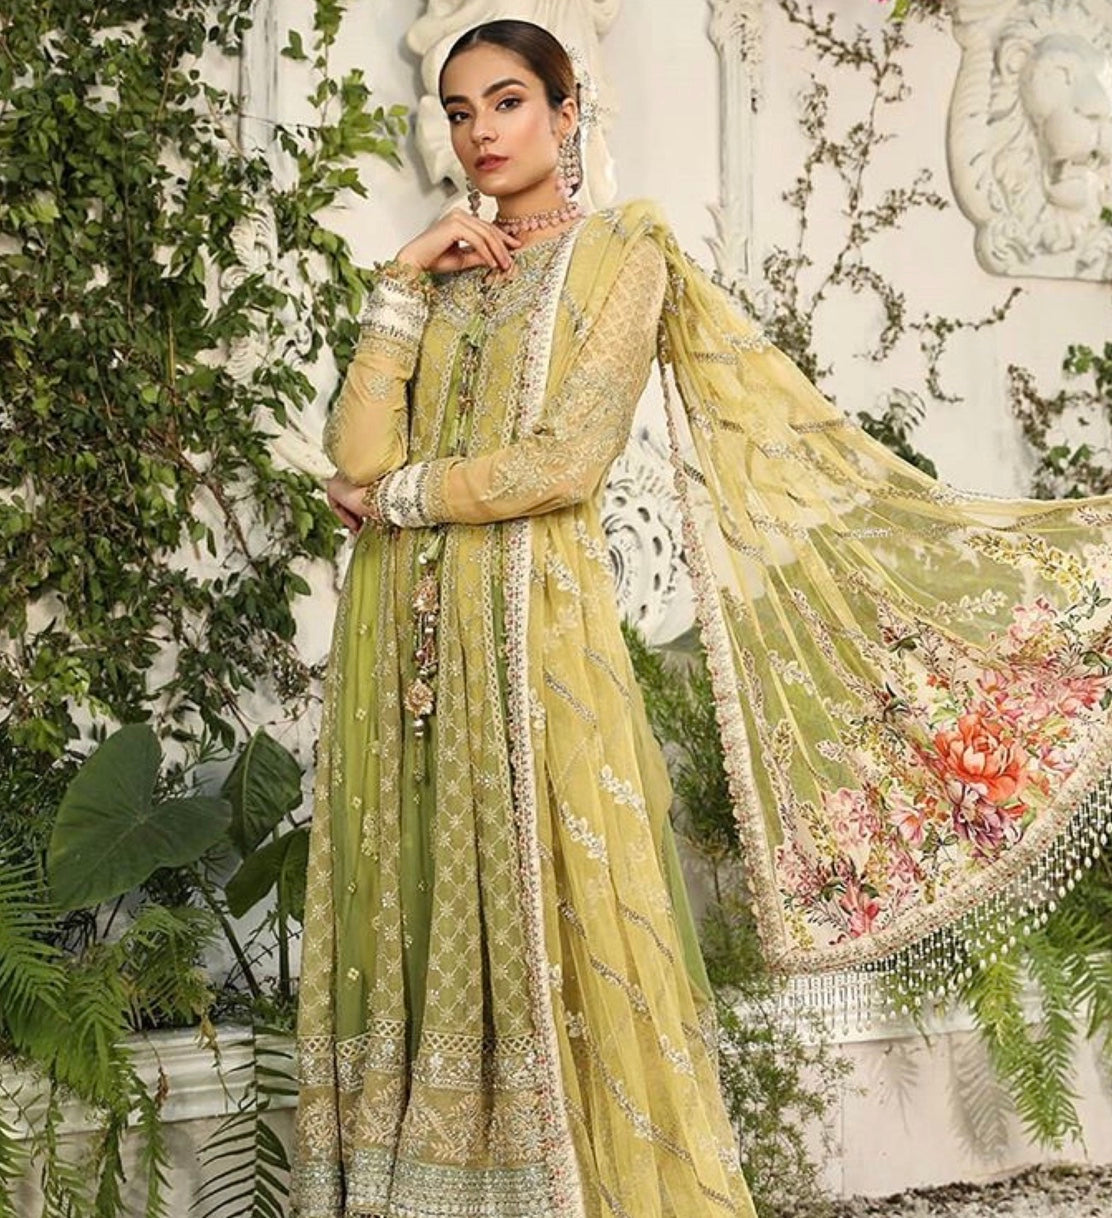 Maria b green suit for Eid 2020